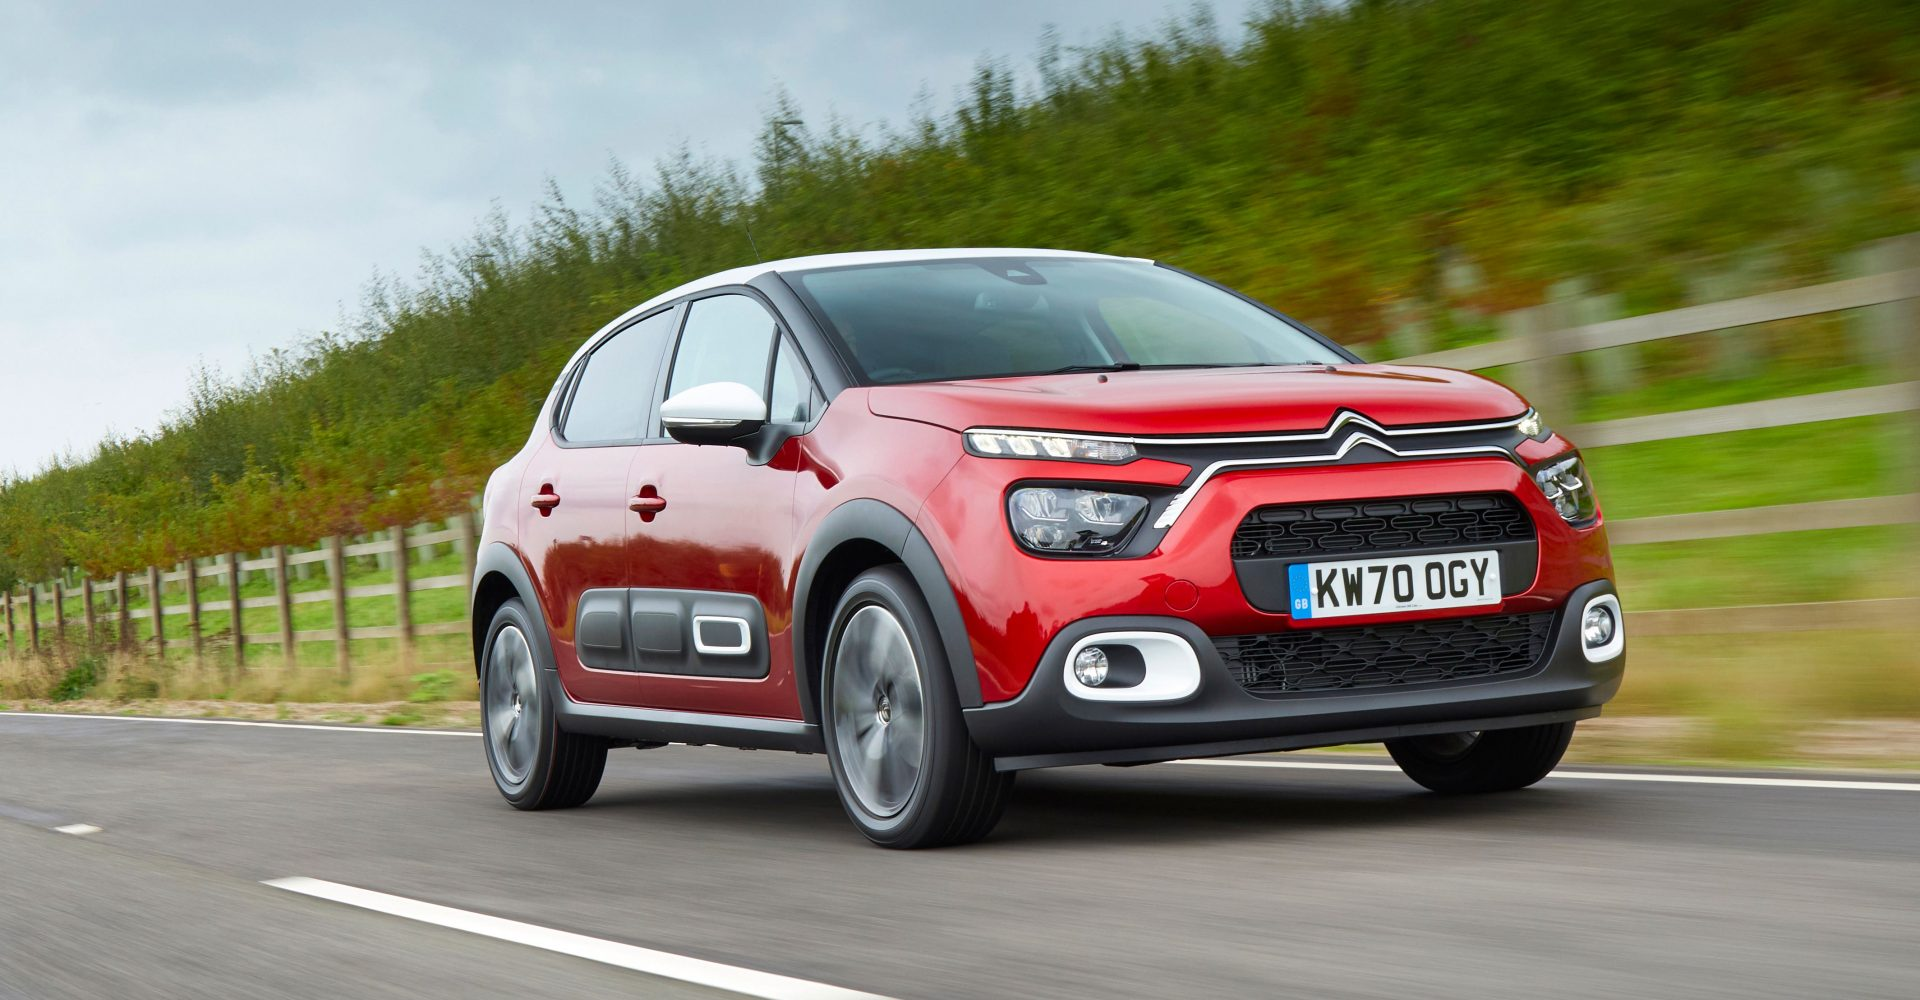 First drive: The updated Citroen C3 is a car for those prioritising comfort